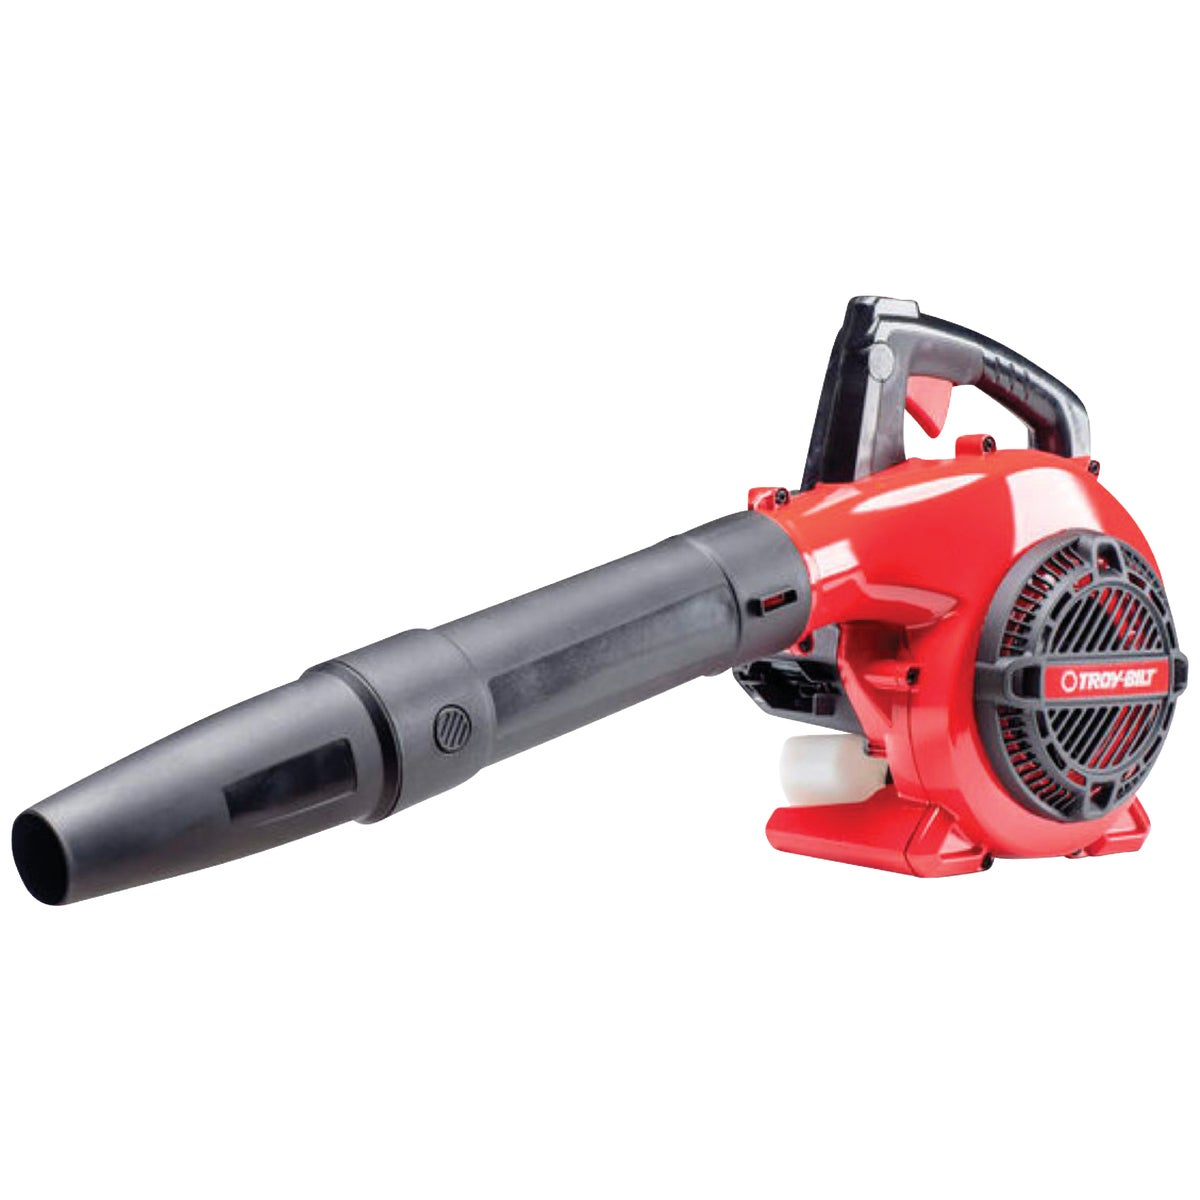 Husqvarna Weedeater Gas Blower 952-711937 by Husqvarna Outdoor